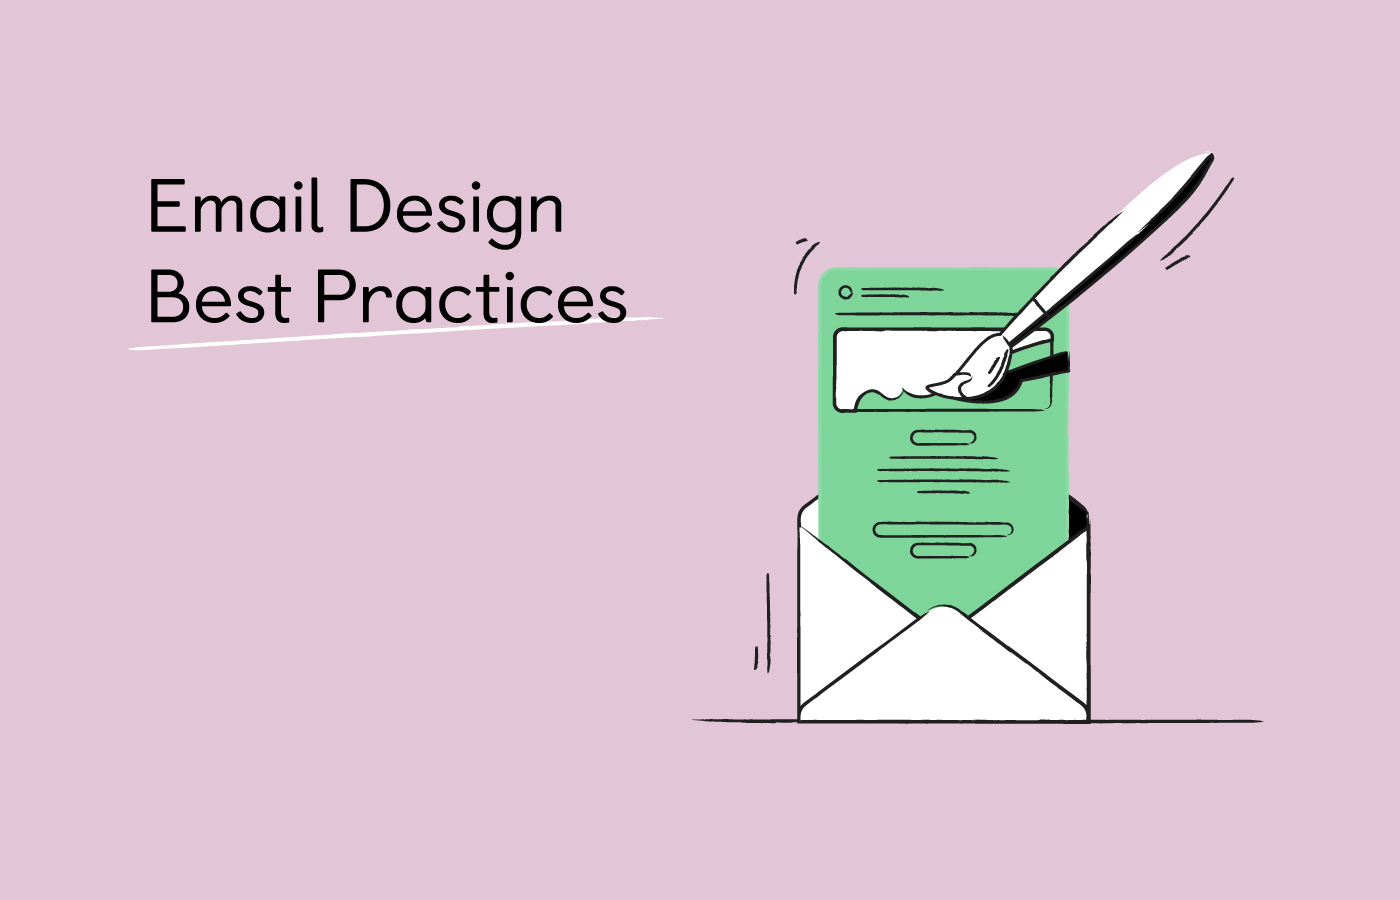 Email Design Best Practices 2021 [Tips & Examples]